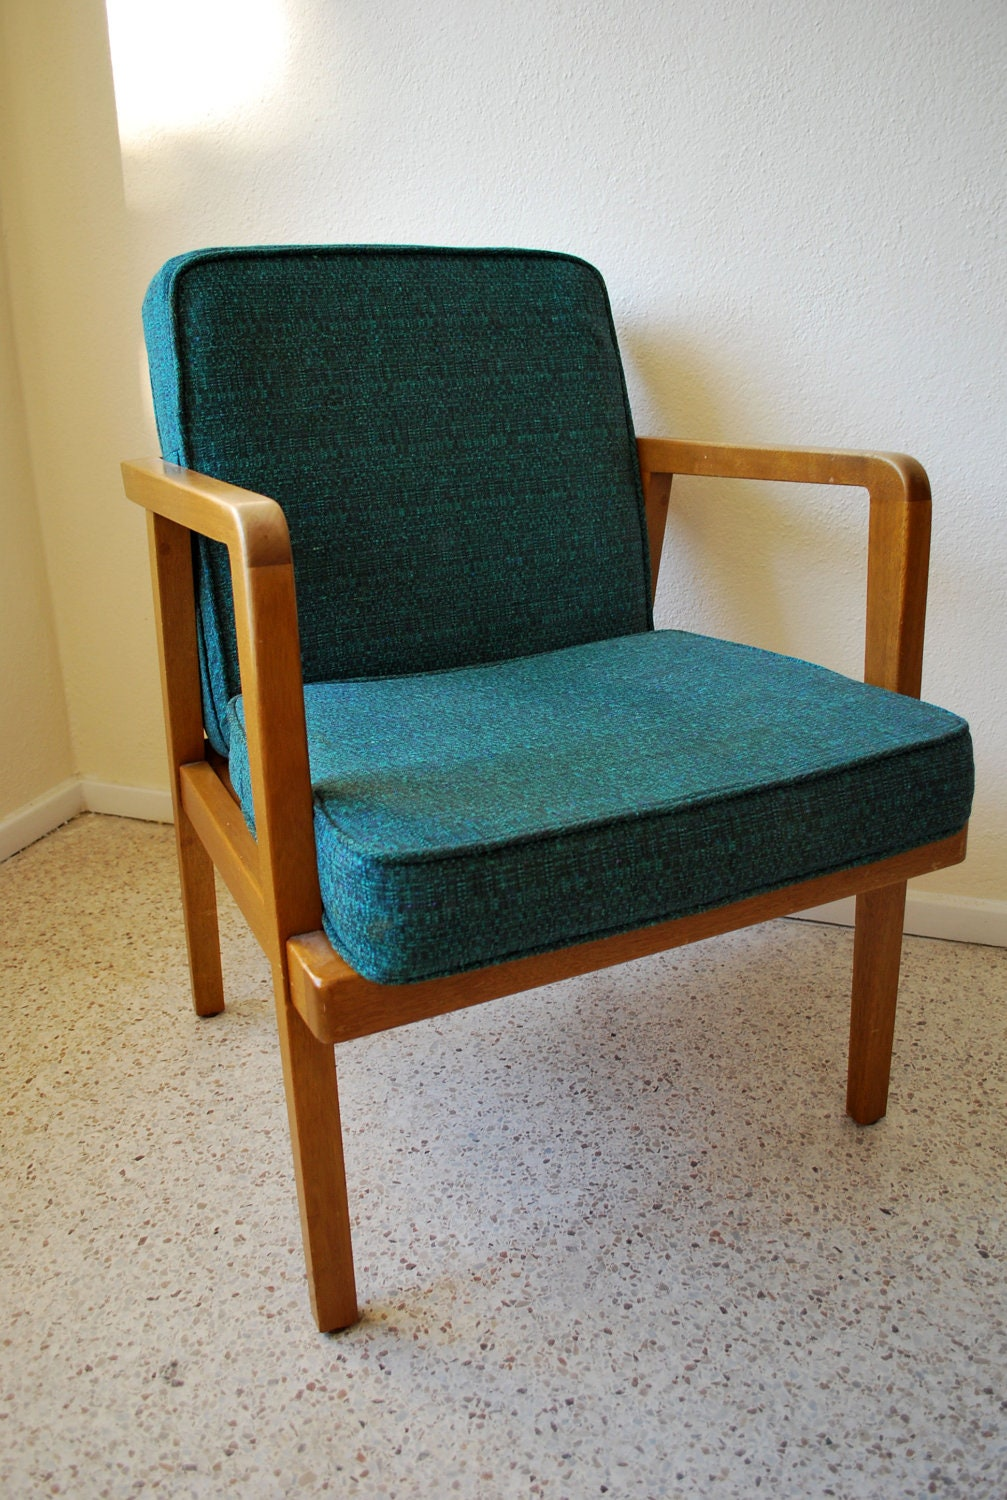 Mid century modern teal lounge chair